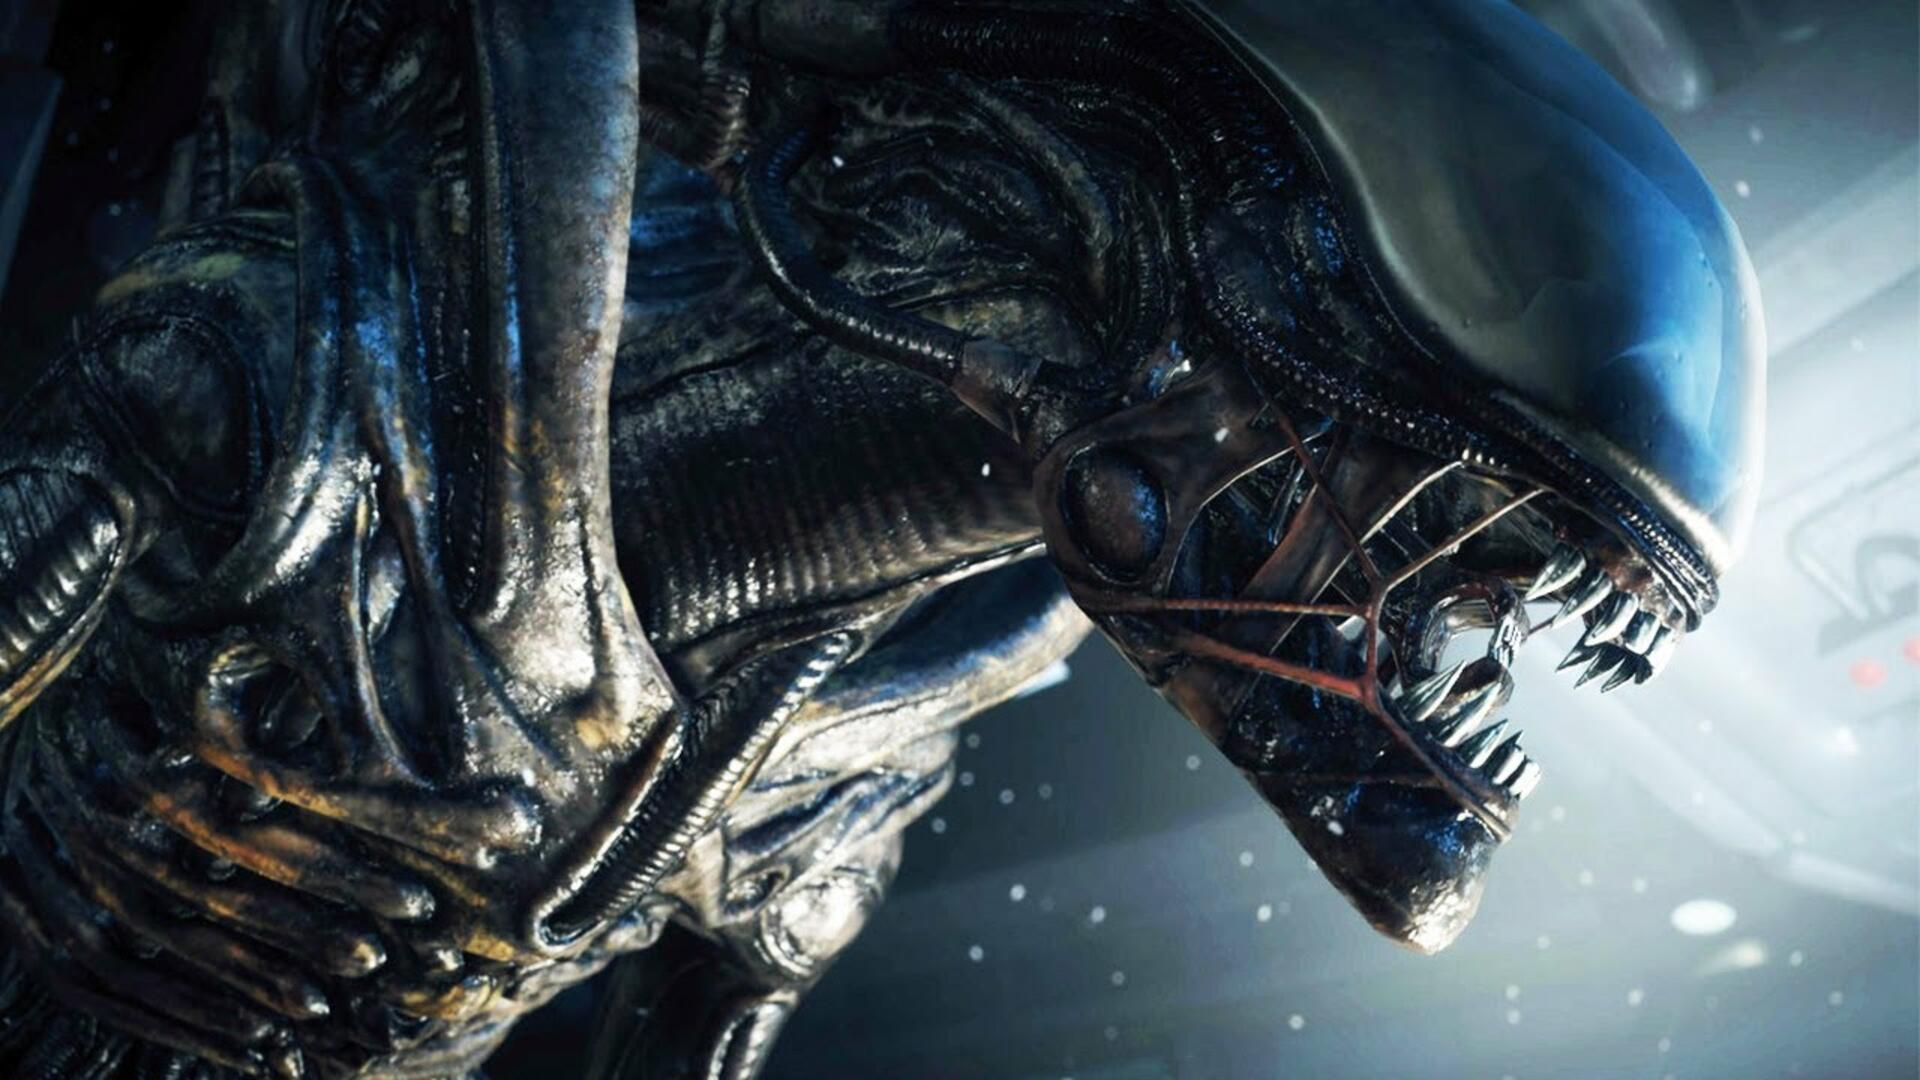 We Still Don't Have an Alien: Isolation Sequel, But You Can Play the Original on Xbox Game Pass This Month